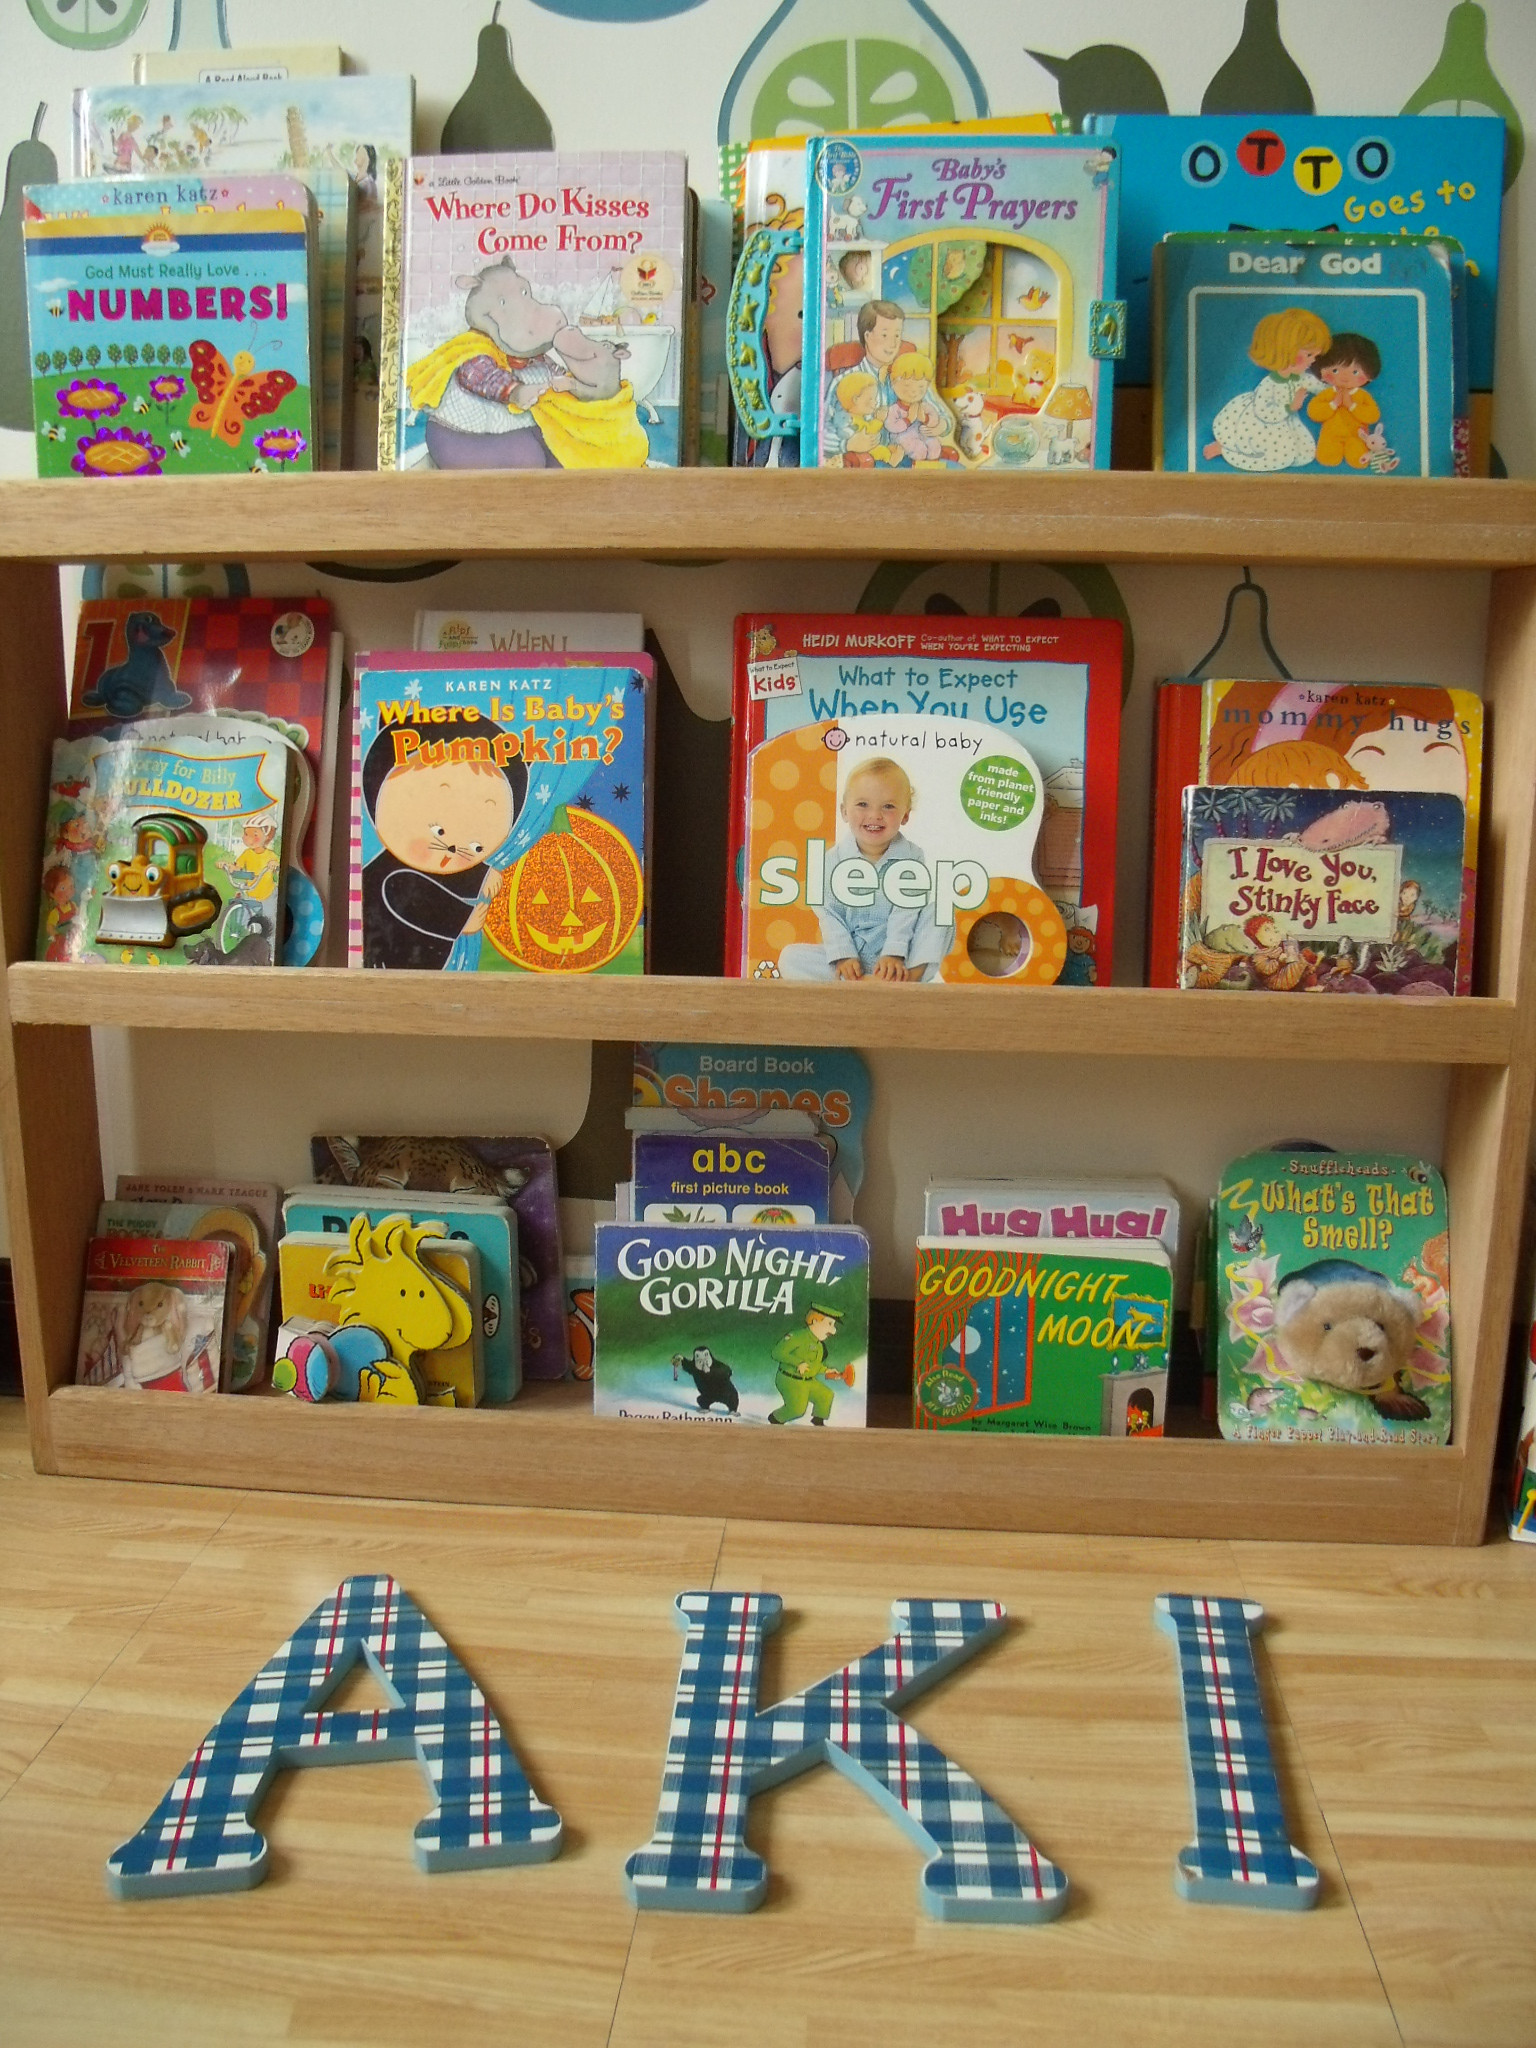 Best ideas about DIY Bookshelves For Kids . Save or Pin Diy Bookshelves For Kids Now.